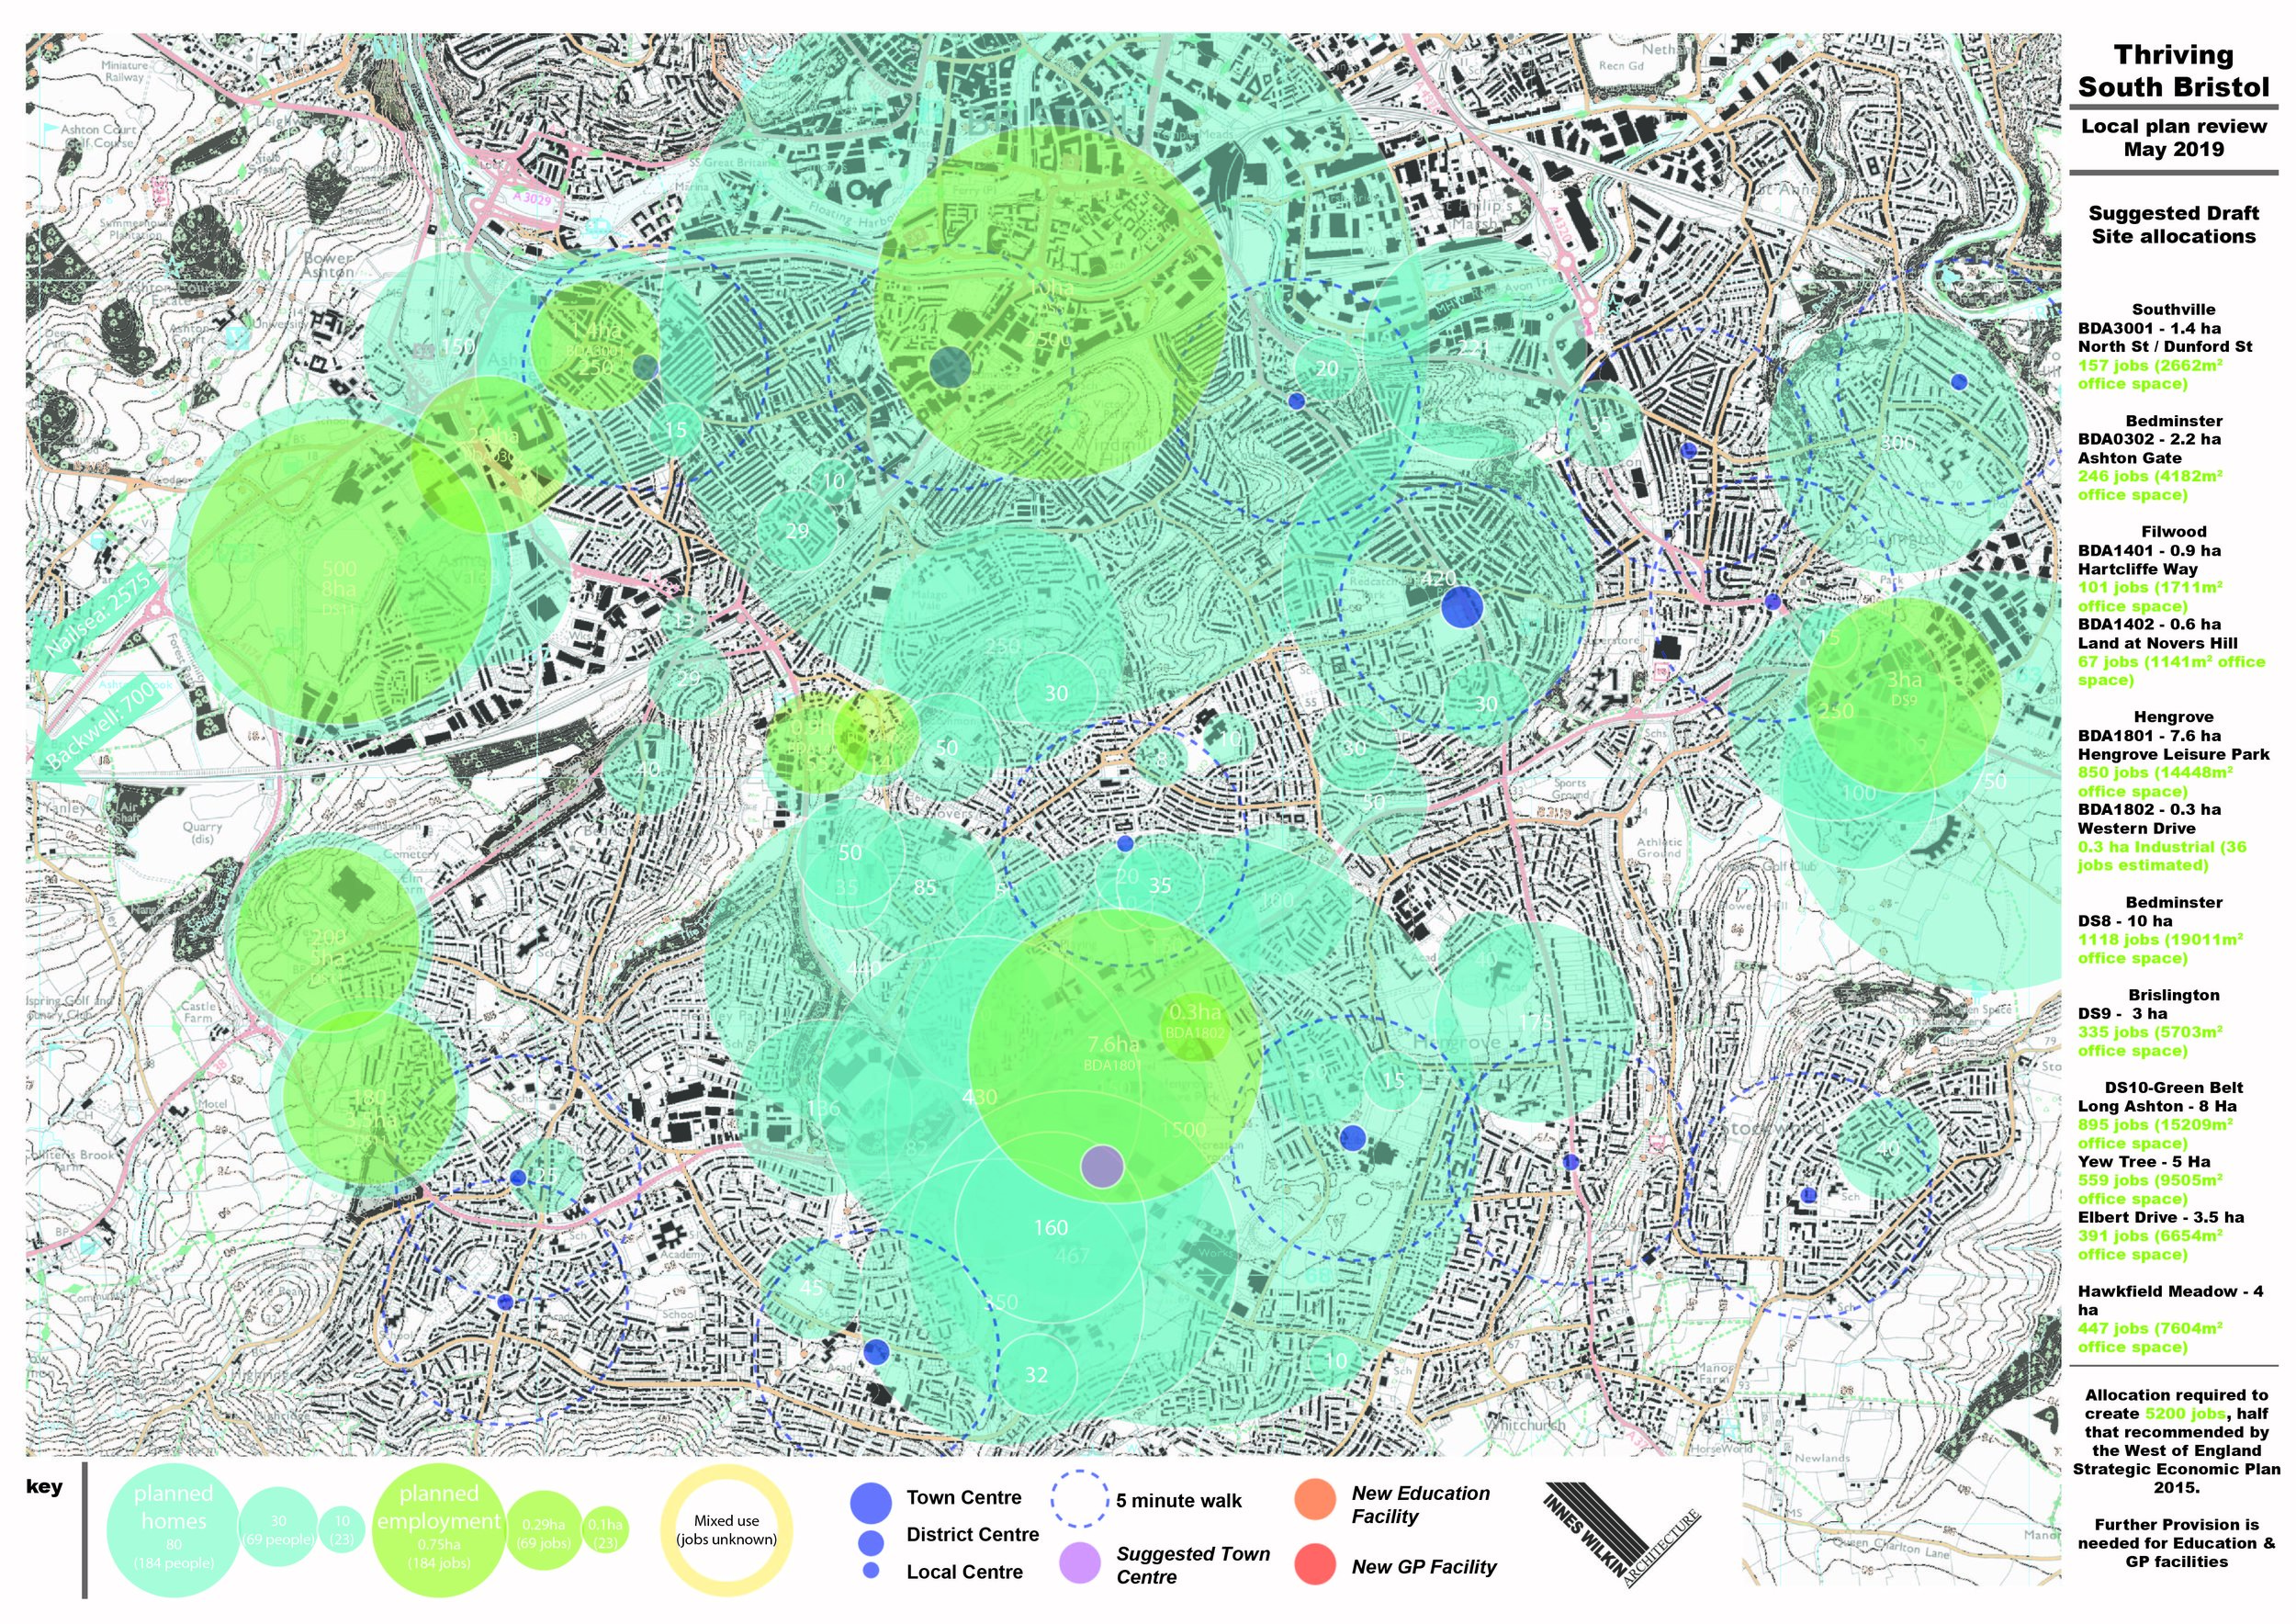 Thriving South Bristol Analysis Mapping Suggested allocations 30.5.19.jpg